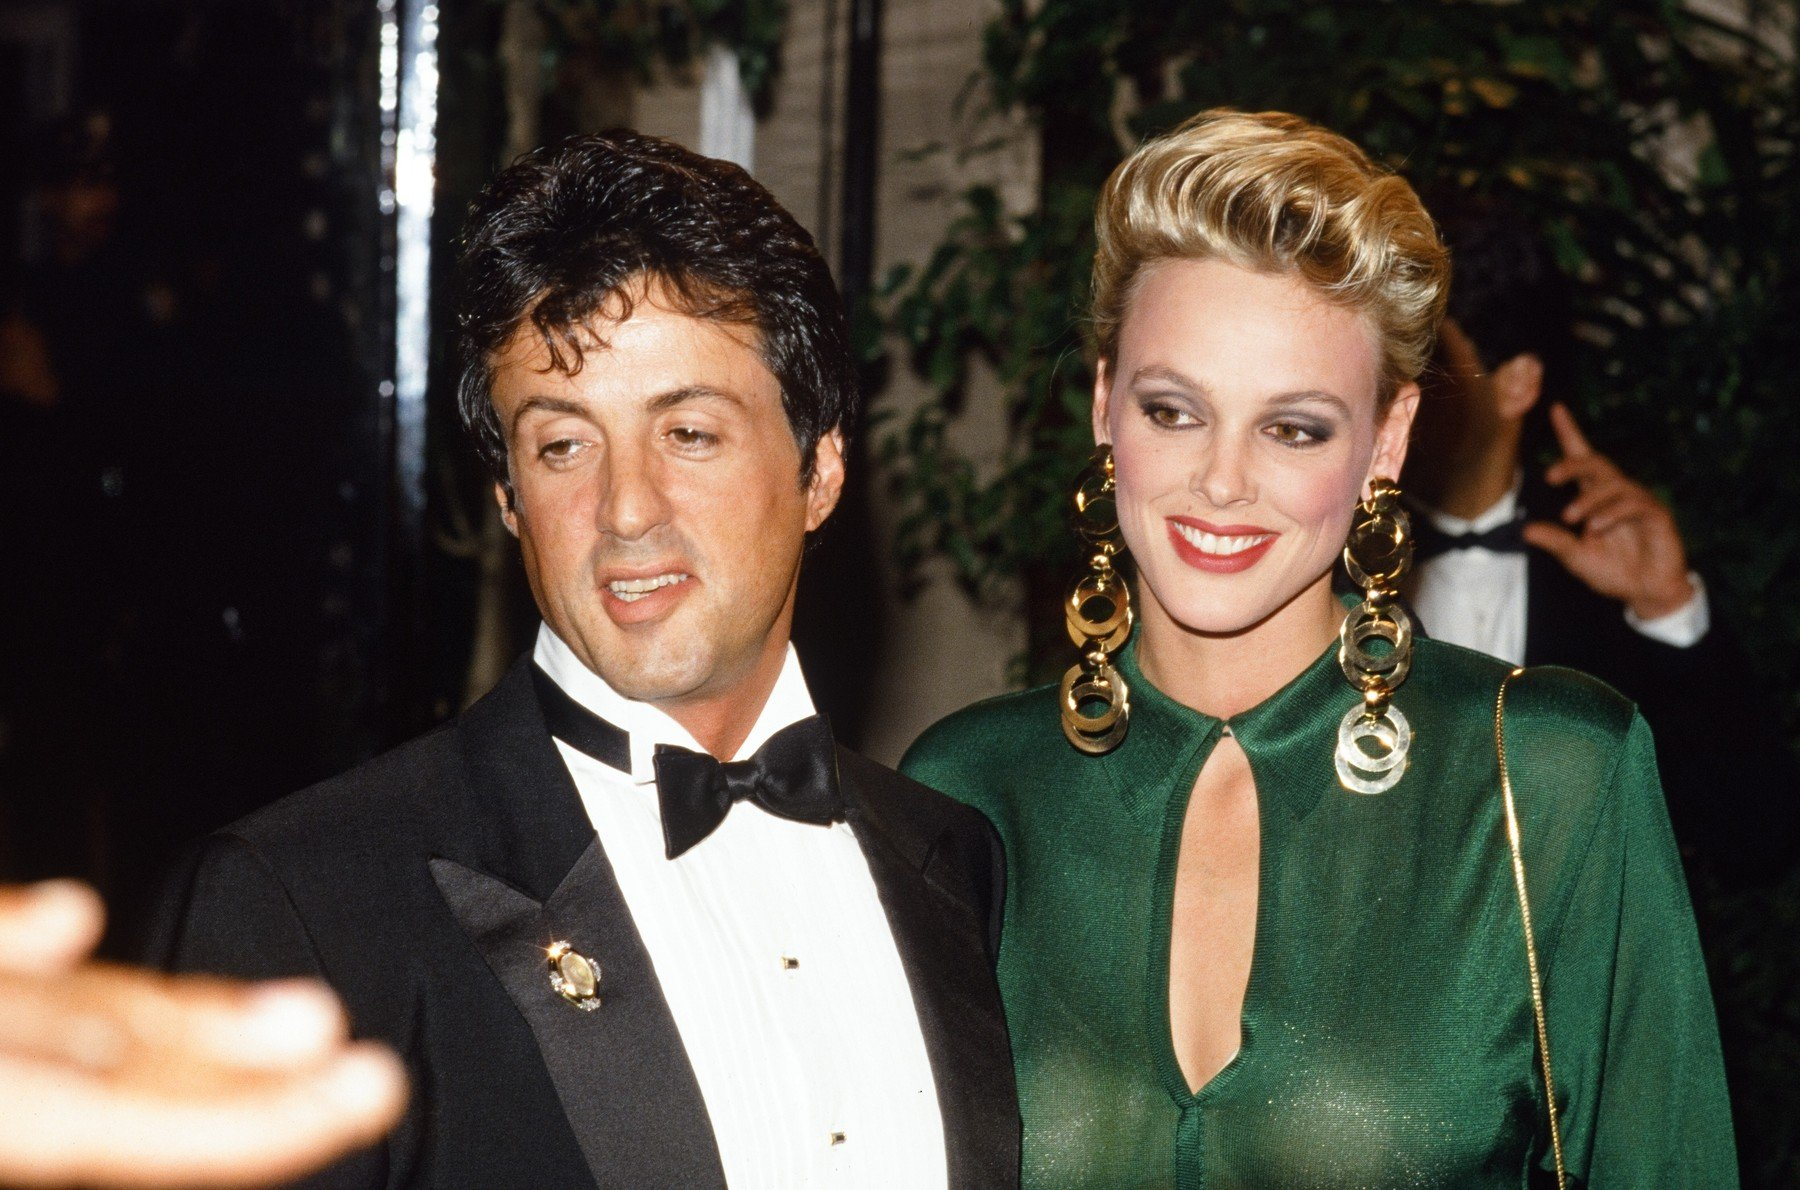 Sylvester Stallone and wife Brigitte Nielsen circa 1985, Image: 180078493, License: Rights-managed, Restrictions: For Editorial Use Only, Model Release: no, Credit line: Profimedia, Hollywood Archive